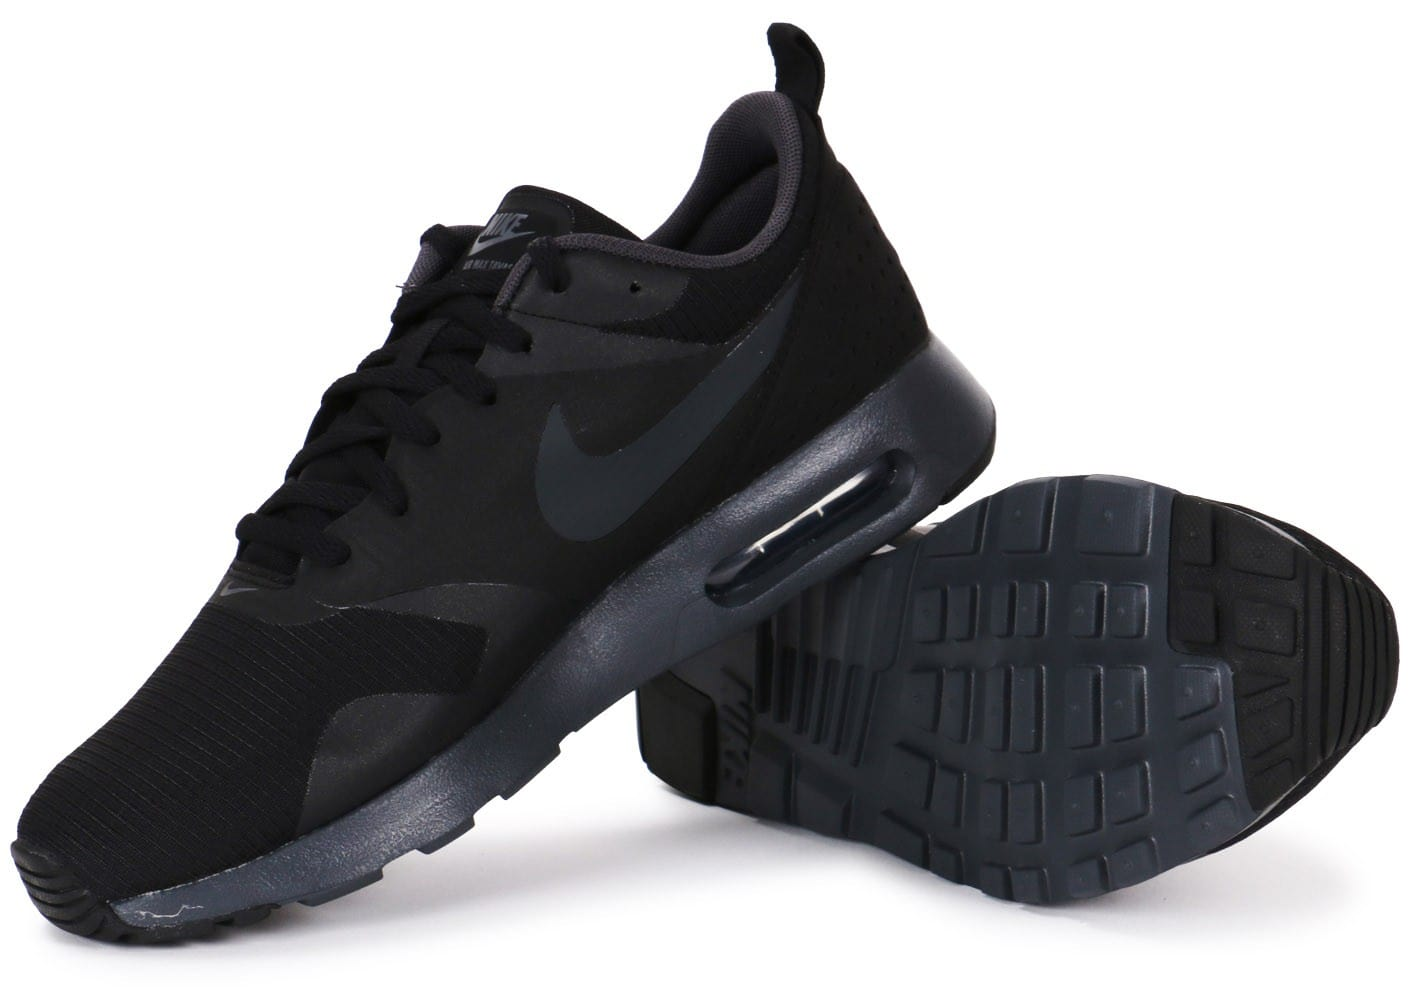 reebok zig slash - Nike Baskets Air Max Tavas Noir | Top Swiss Replica Watches Uk ...